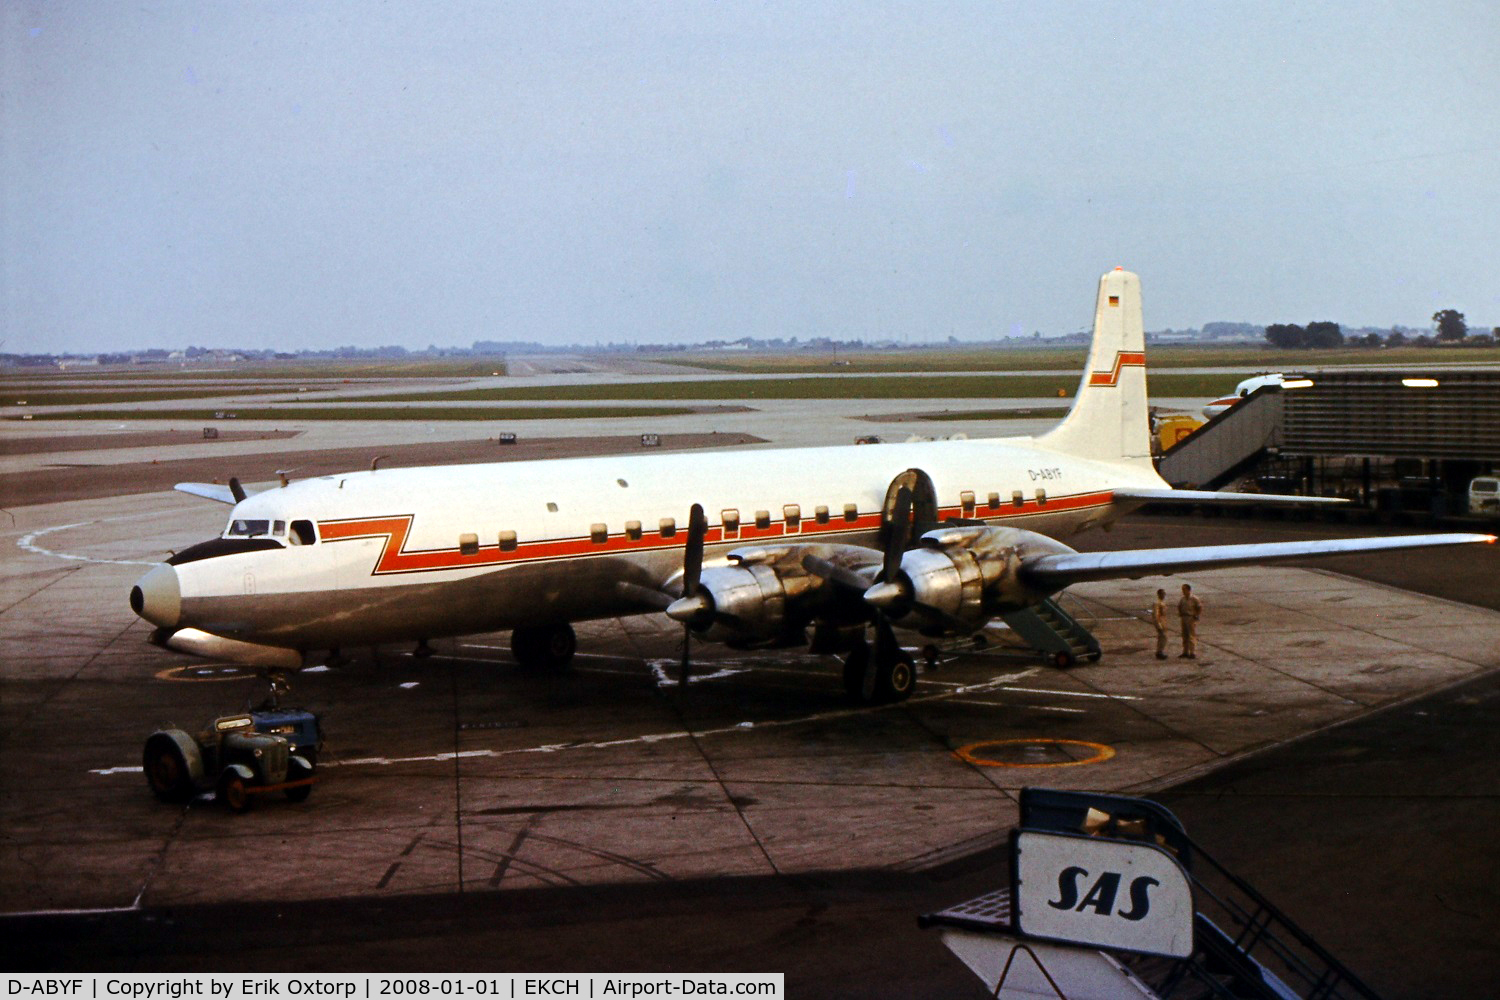 D-ABYF, 1956 Douglas DC-7C Seven Seas C/N 44933, D-ABYF in CPH in the late 60's